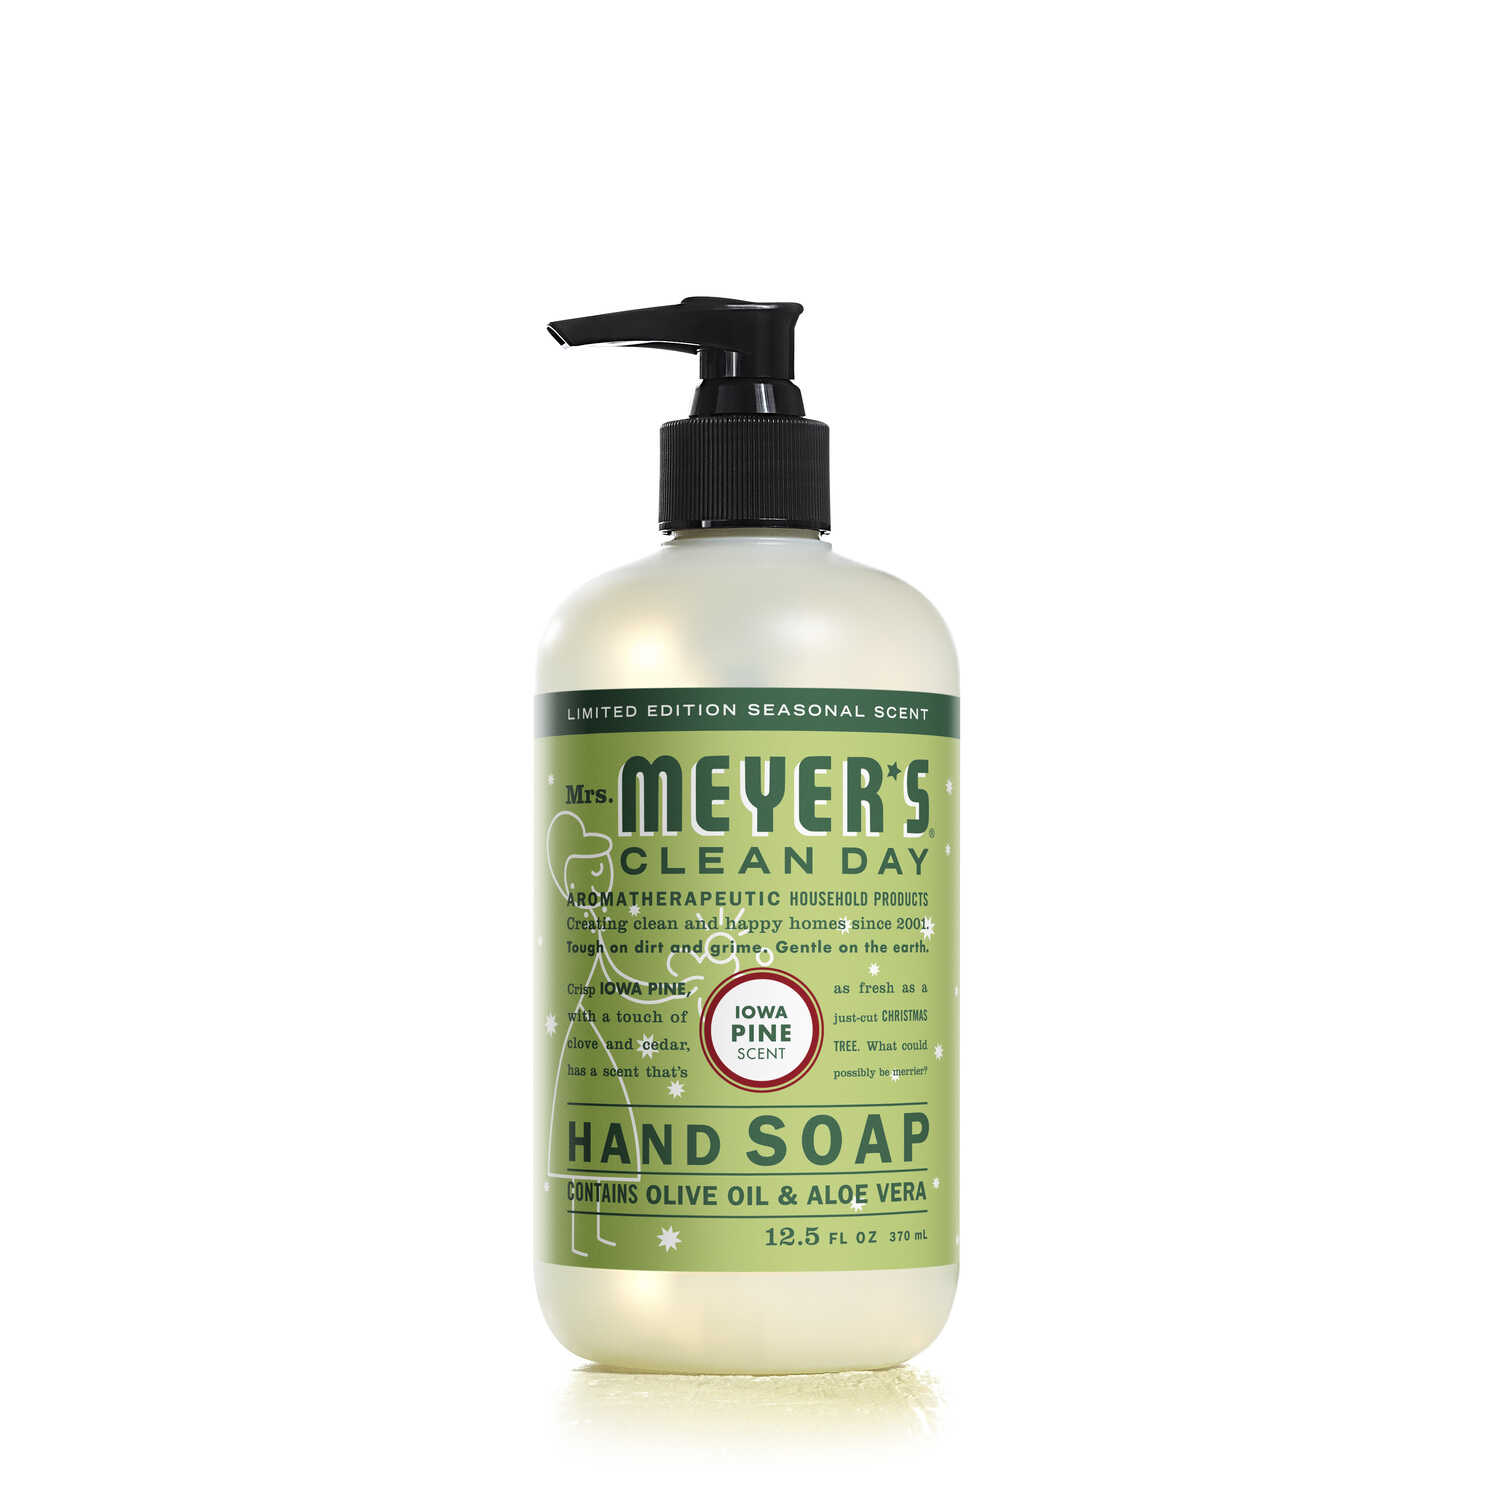 Mrs. Meyer's  Clean Day  Organic Iowa Pine Scent Liquid Hand Soap  12.5